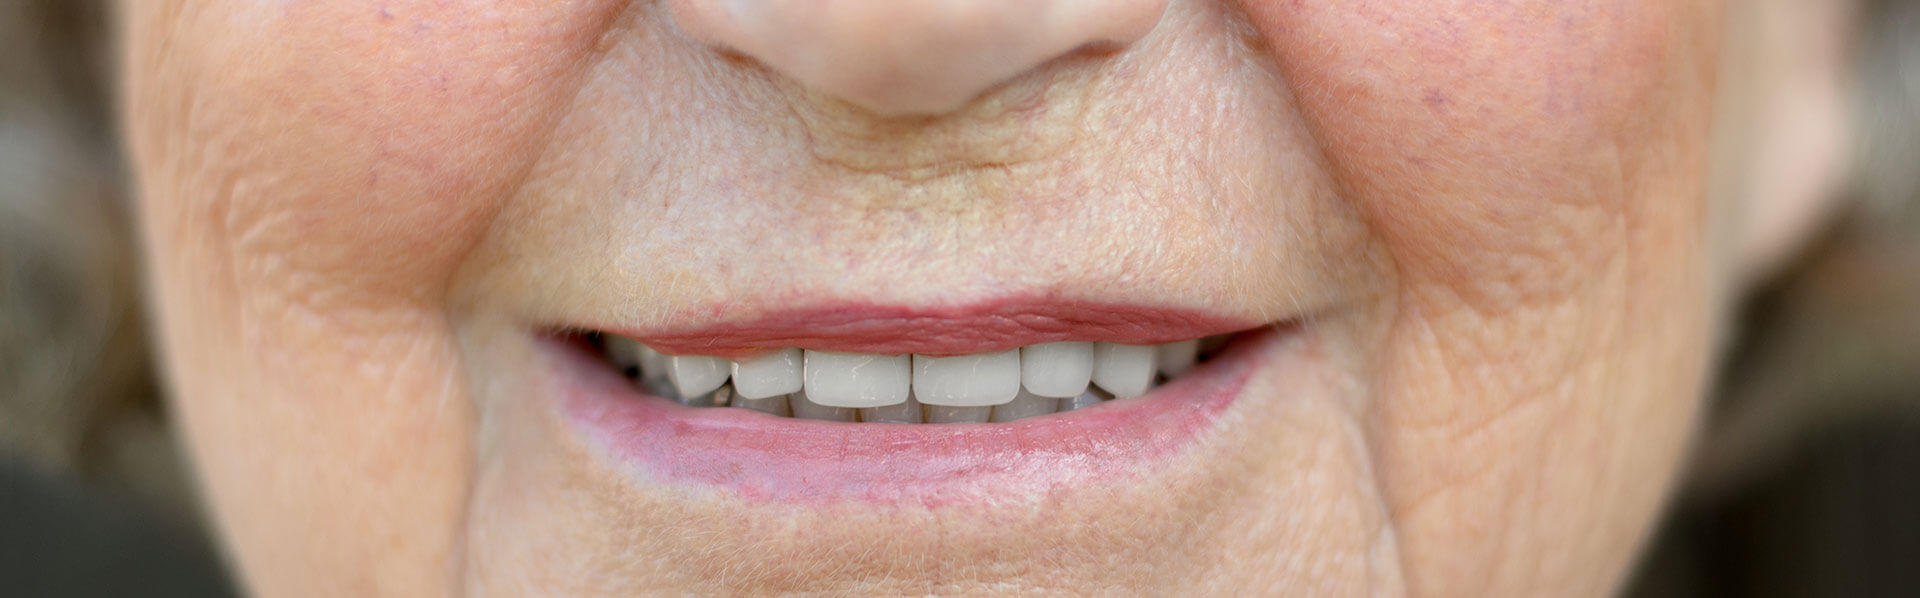 Woman's smiling lips